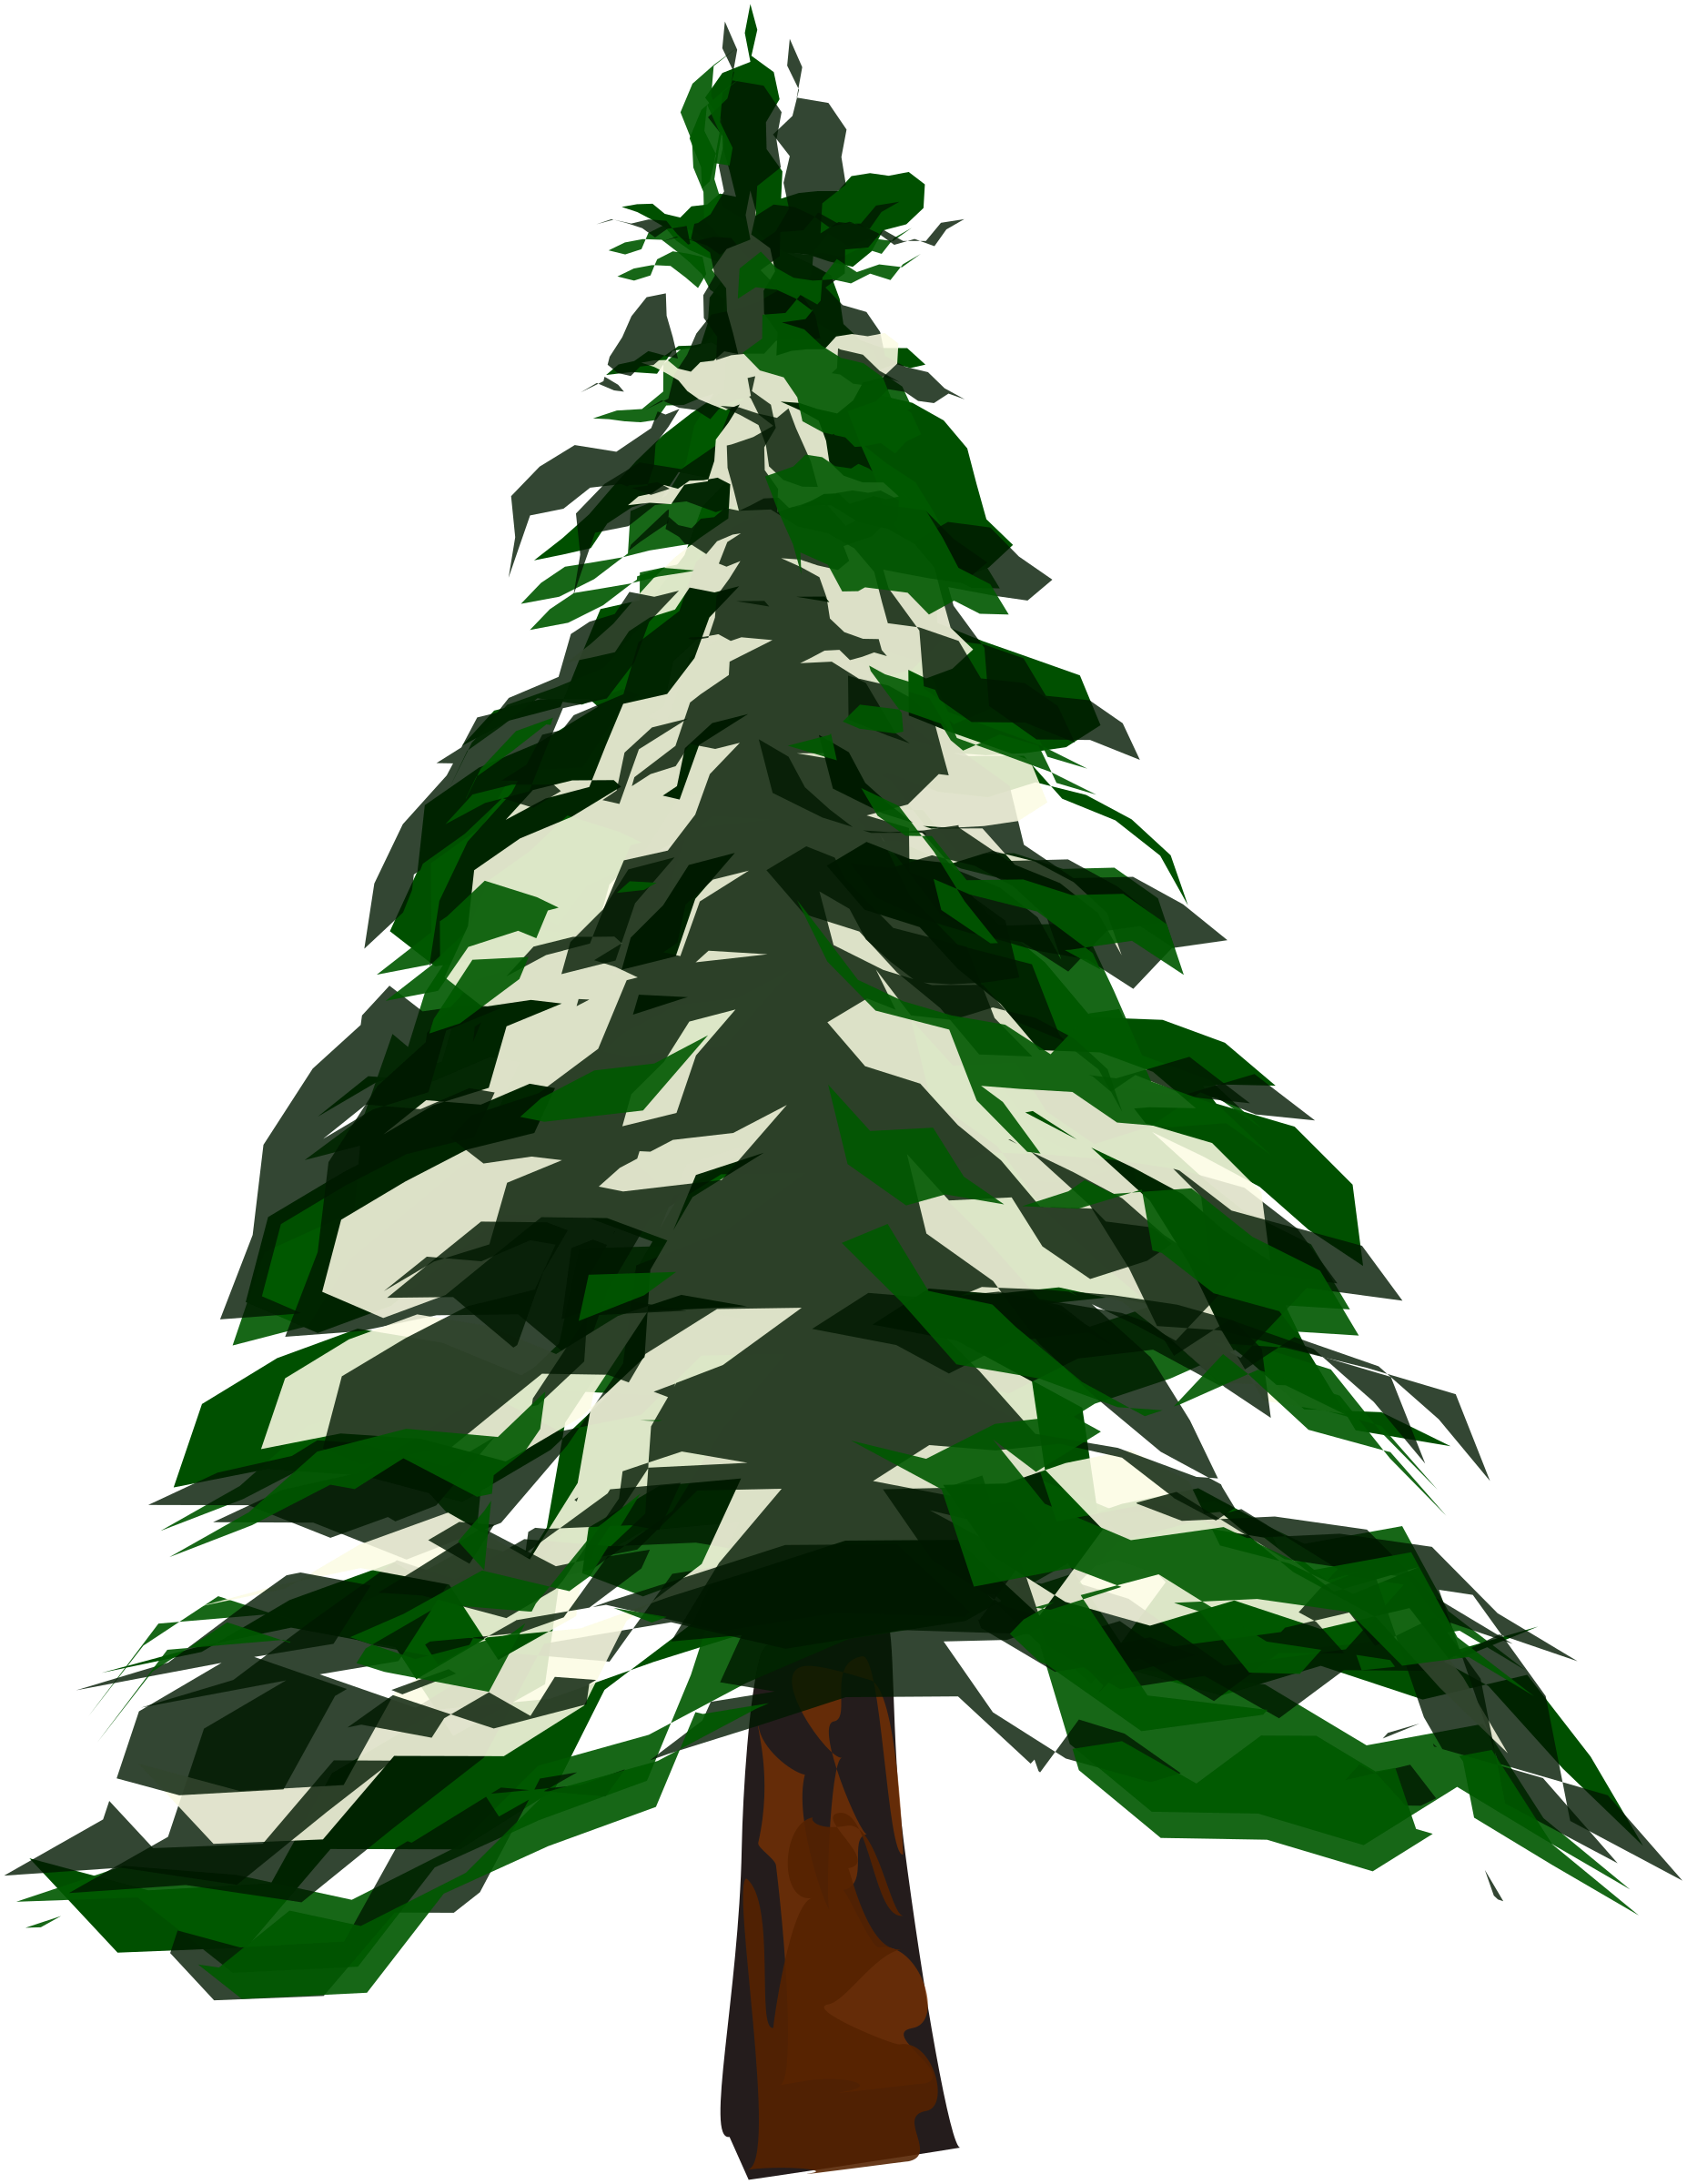 Cartoon pine tree png. Winter icons free and